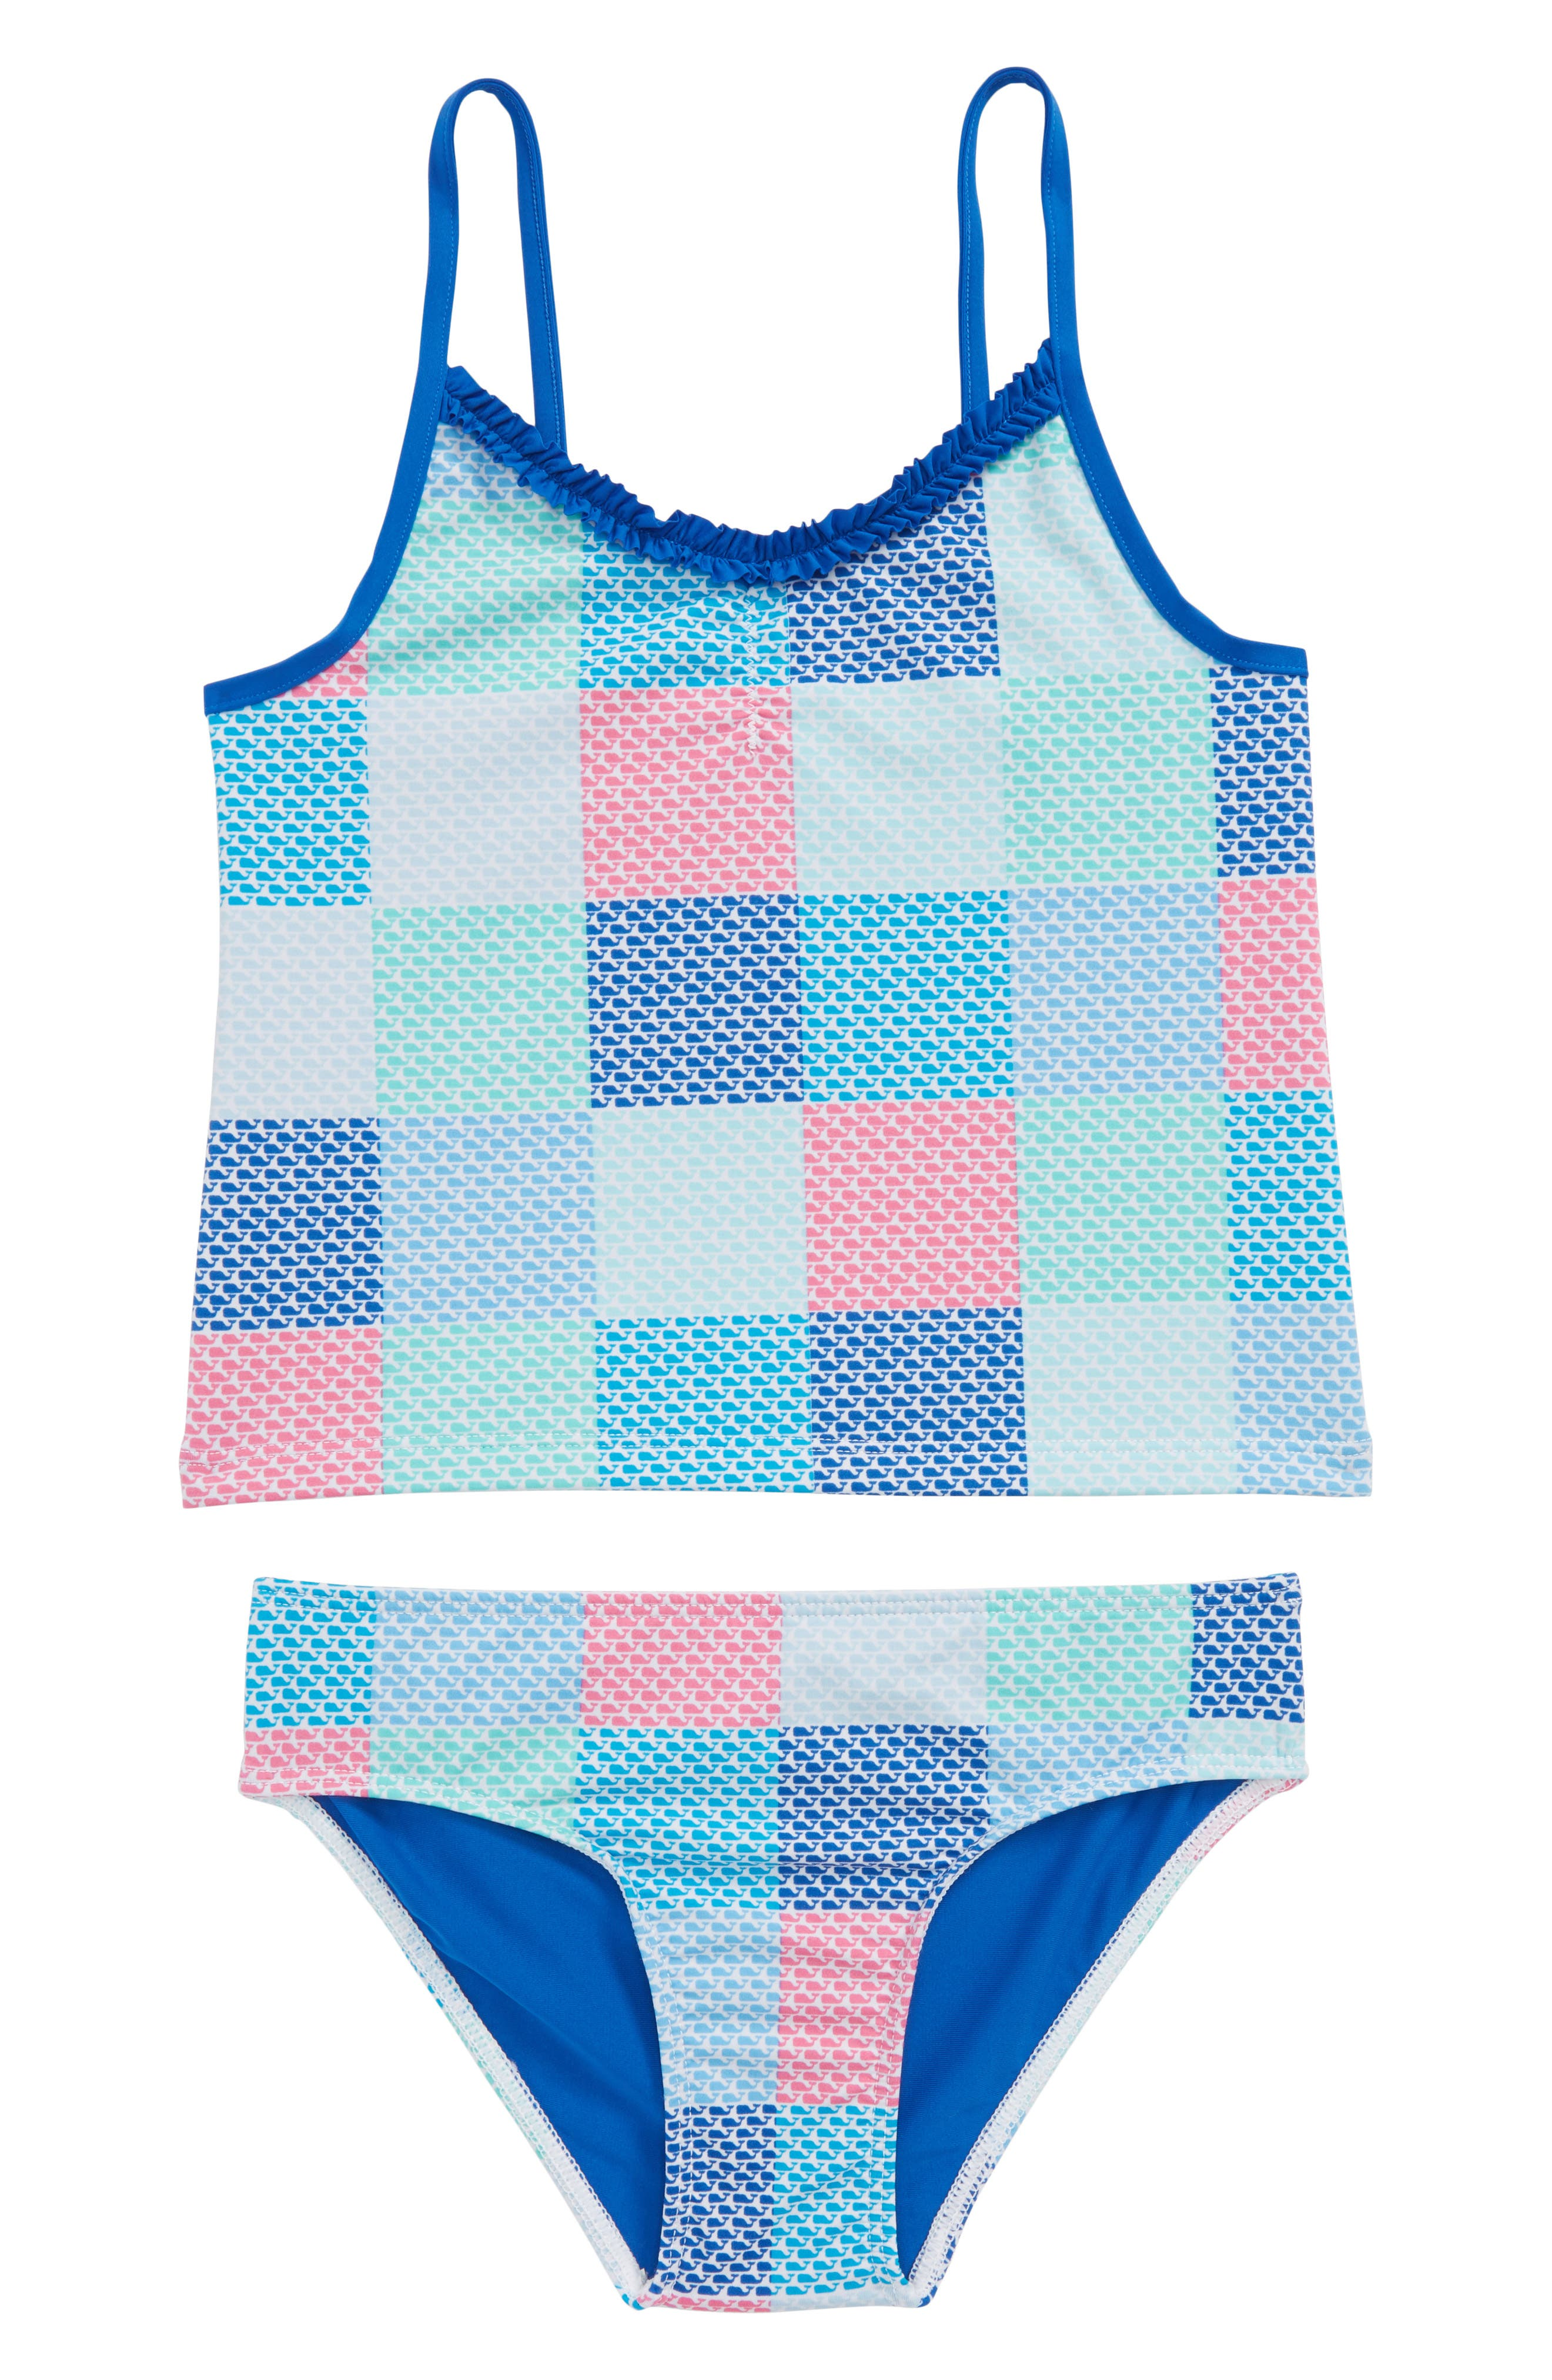 Patchwork Whale Two-Piece Tankini Swimsuit,                         Main,                         color, 400